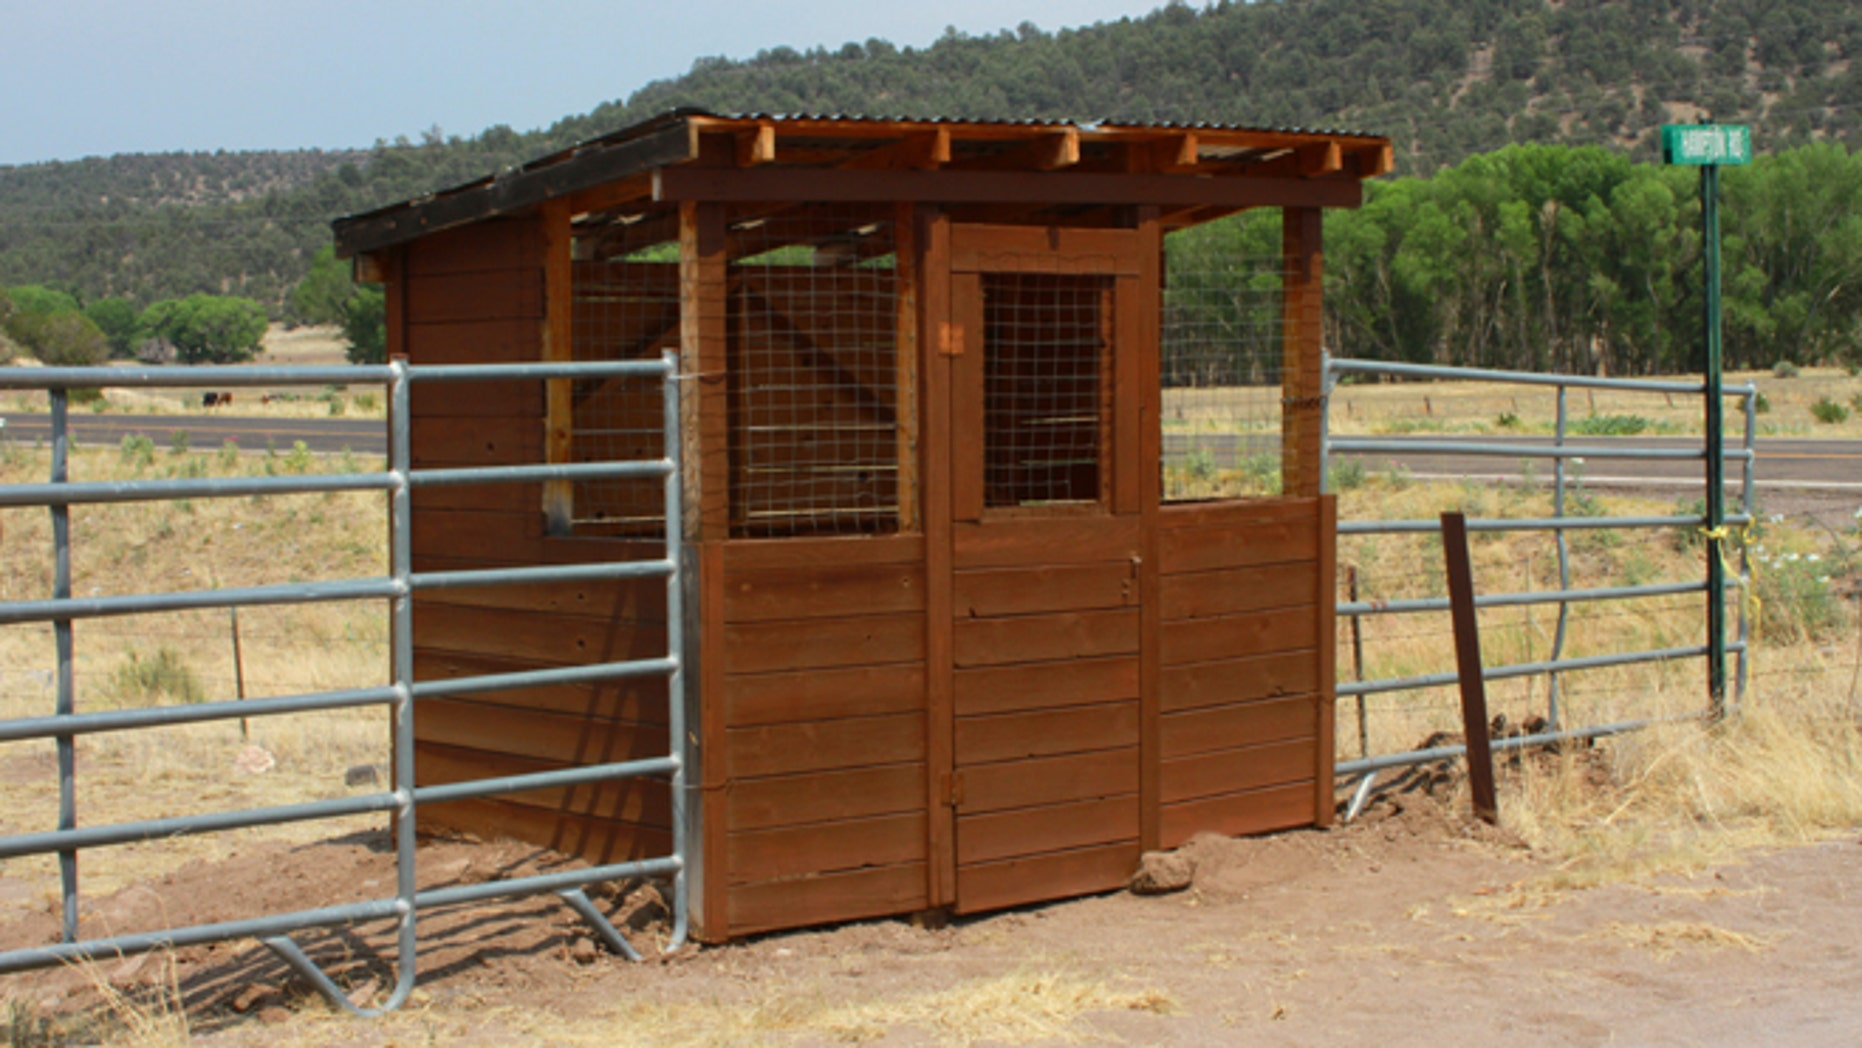 Catron County Sheriff Shawn Menges said the structures are not new, but their purpose is under renewed scrutiny as the U.S. Fish and Wildlife Service (FWS) proposes to extend Endangered Species Act protections for an estimated 75 Mexican gray wolves in New Mexico and Arizona. (Courtesy: David Spady)